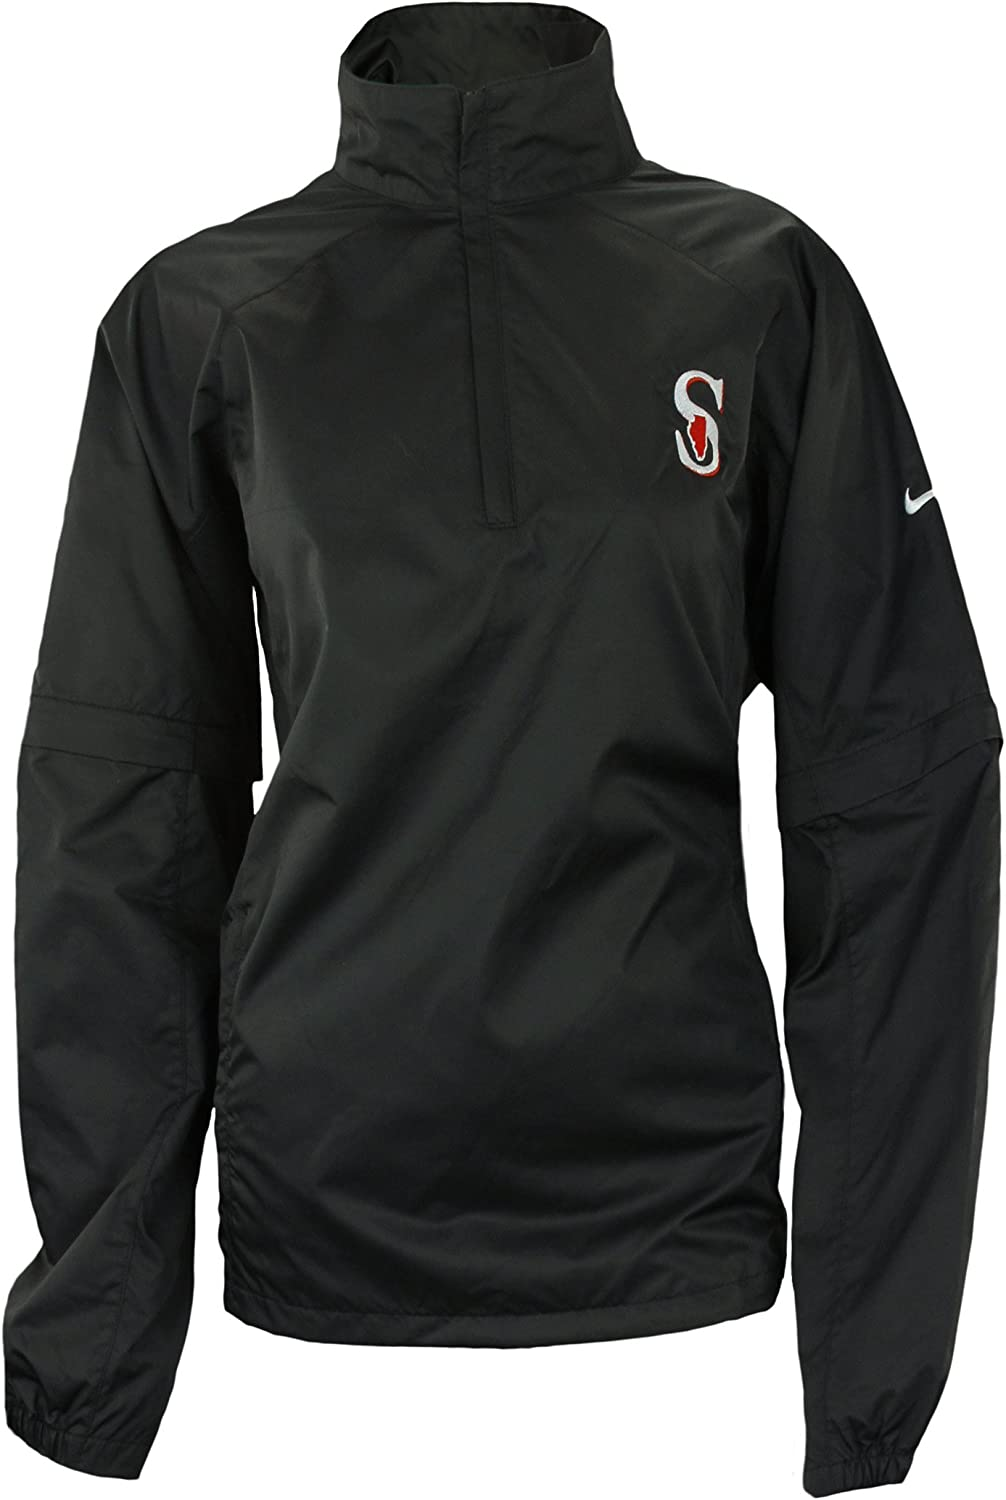 Nike Womens Southern Illinois Black Industry No. 1 StormFit 55% OFF Jacket